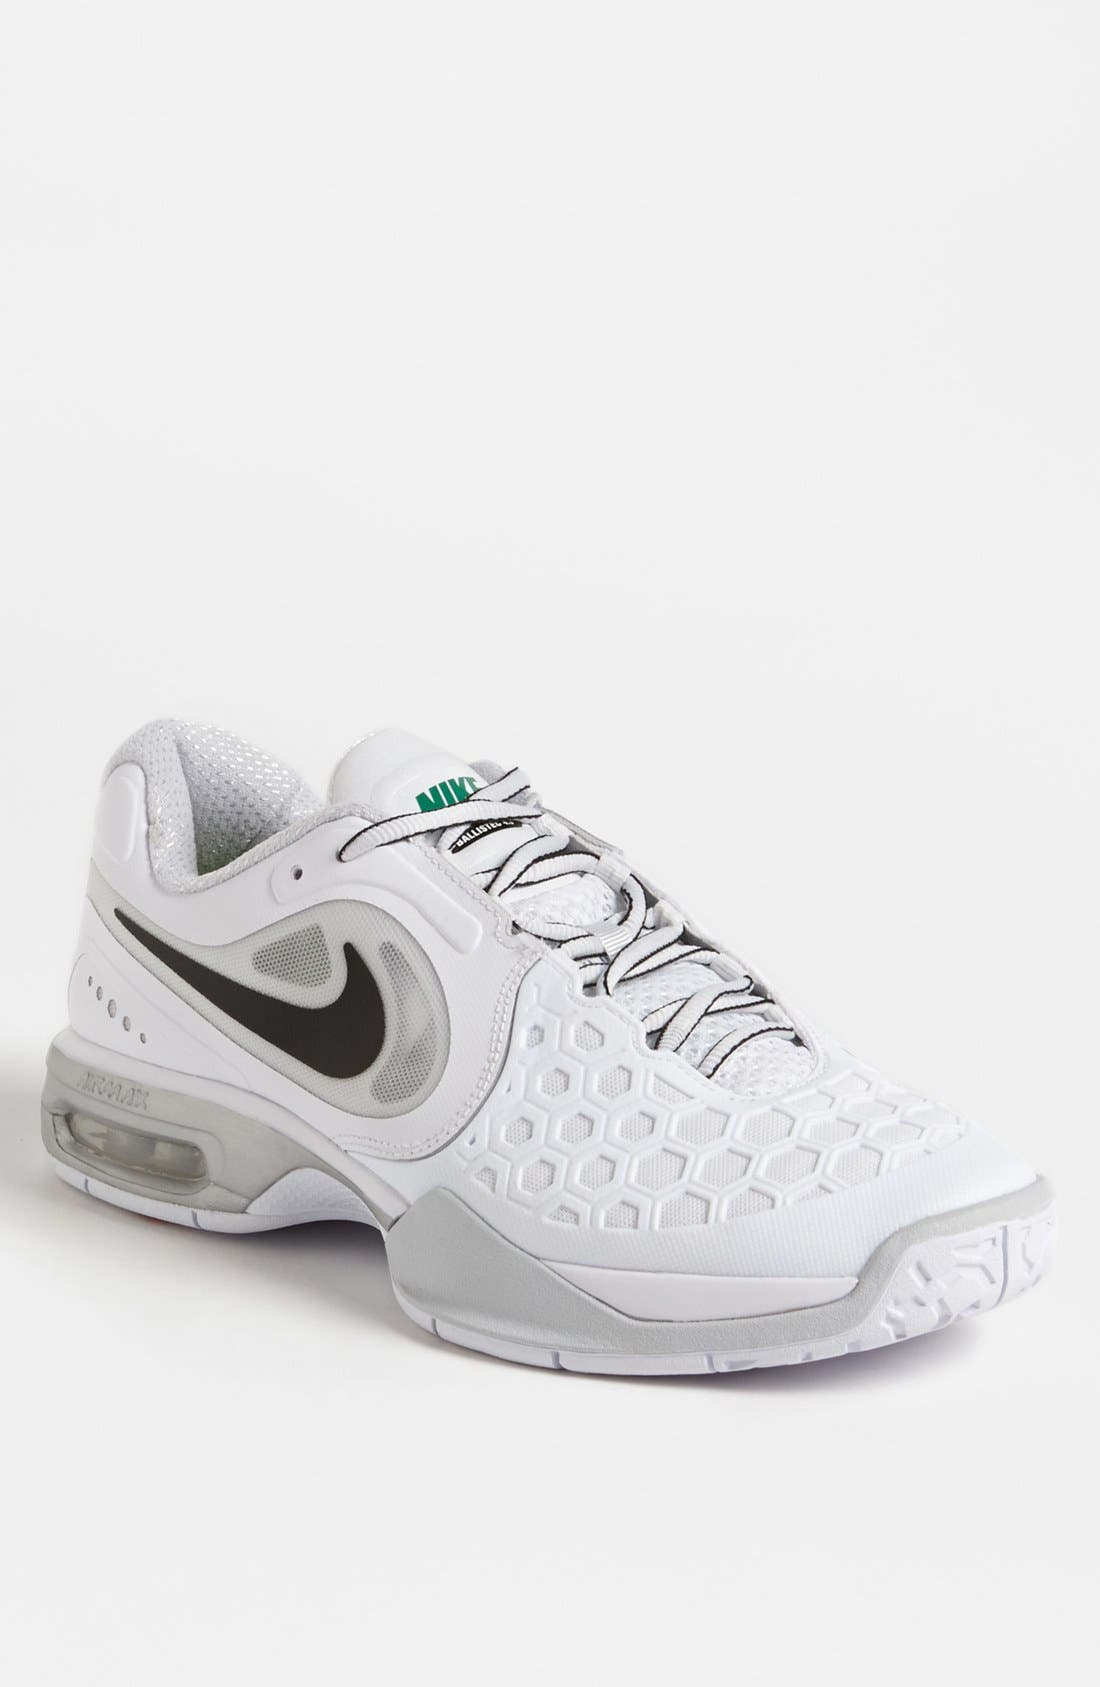 Alternate Image 1 Selected - Nike 'Air Max Court Ballistec 4.3' Tennis Shoe (Men)